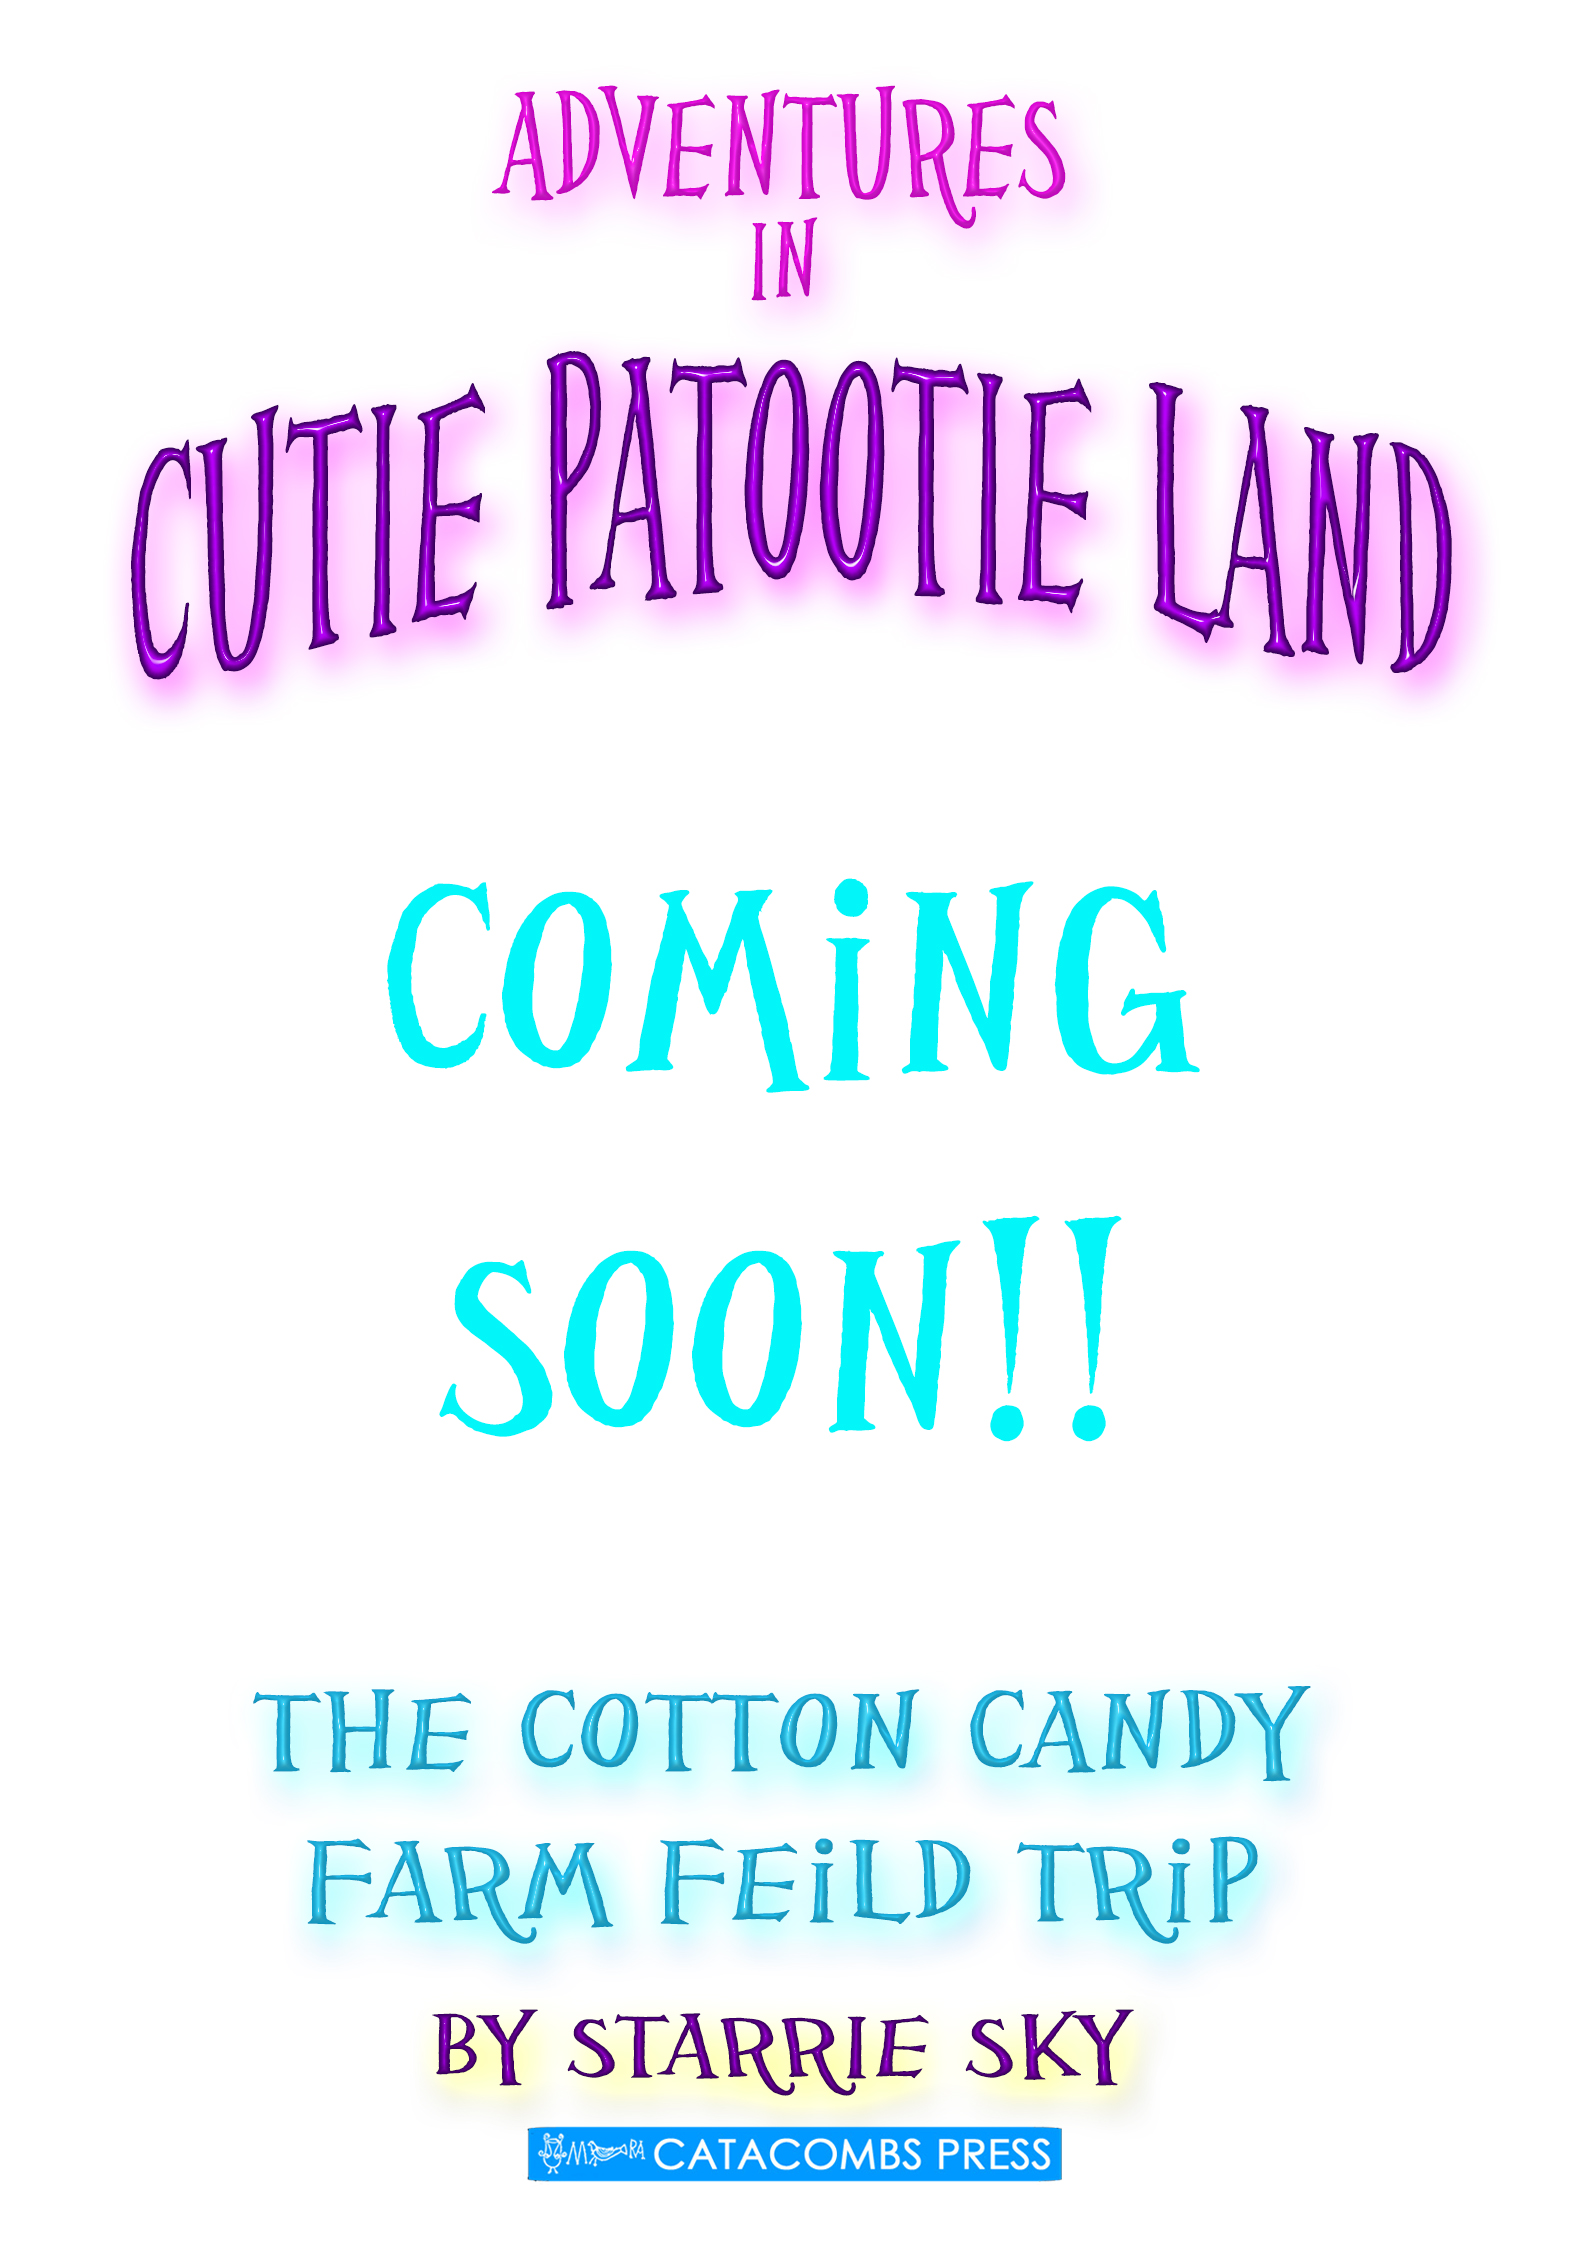 Adventures in Cutie Patootie Land and the Cotton Candy Farm Feild Trip